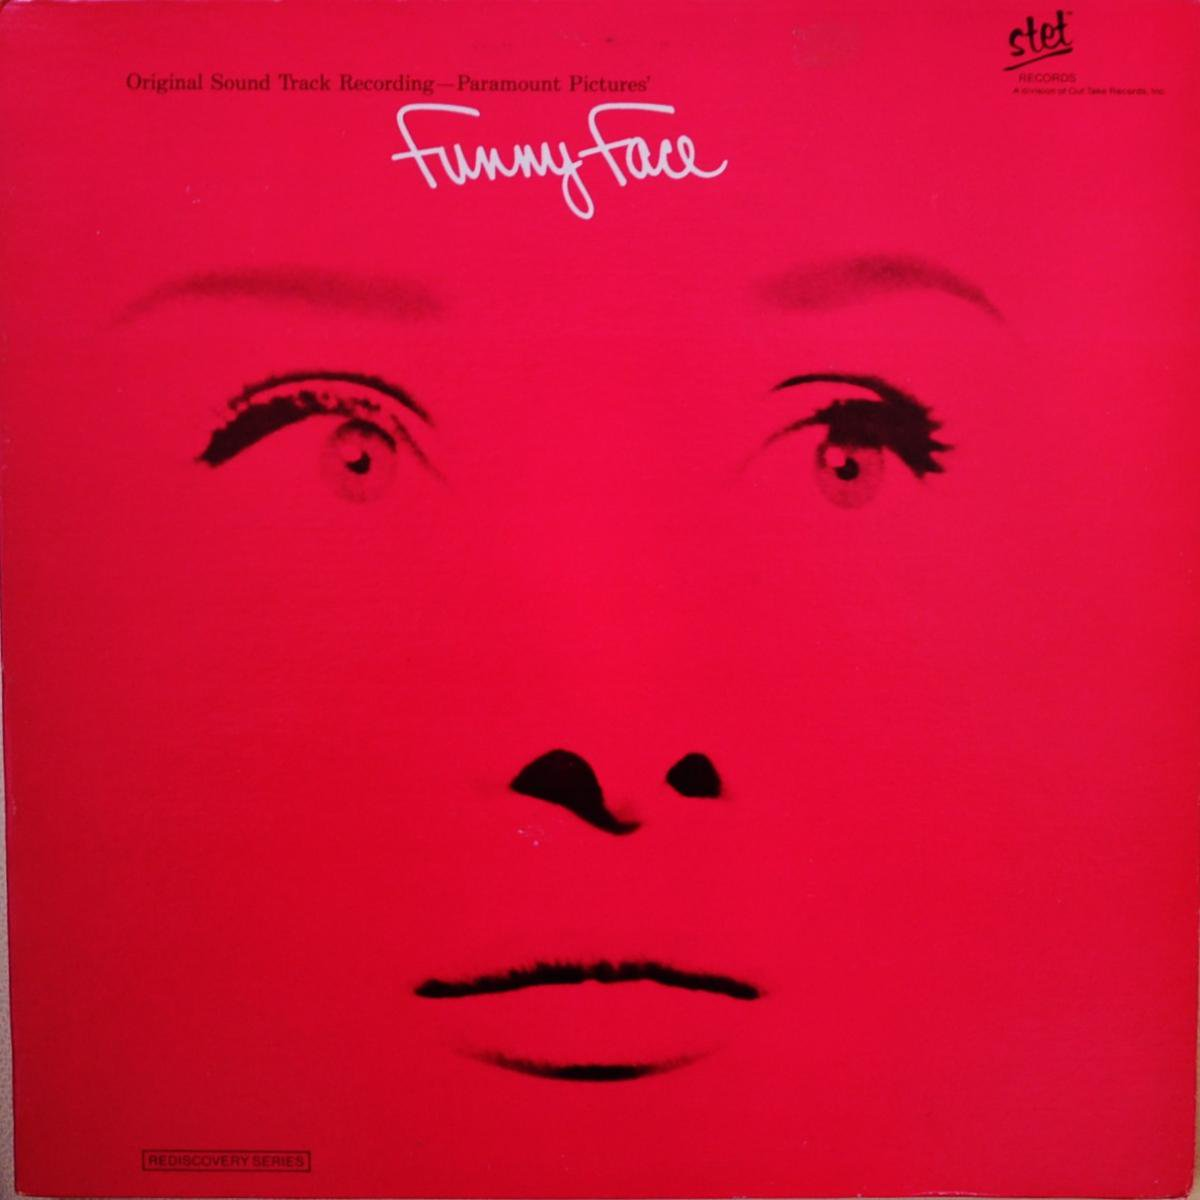 FRED ASTAIRE,AUDREY HEPBURN AND KAY THOMPSON / FUNNY FACE (ORIGINAL SOUND TRACK RECORDING) (LP)